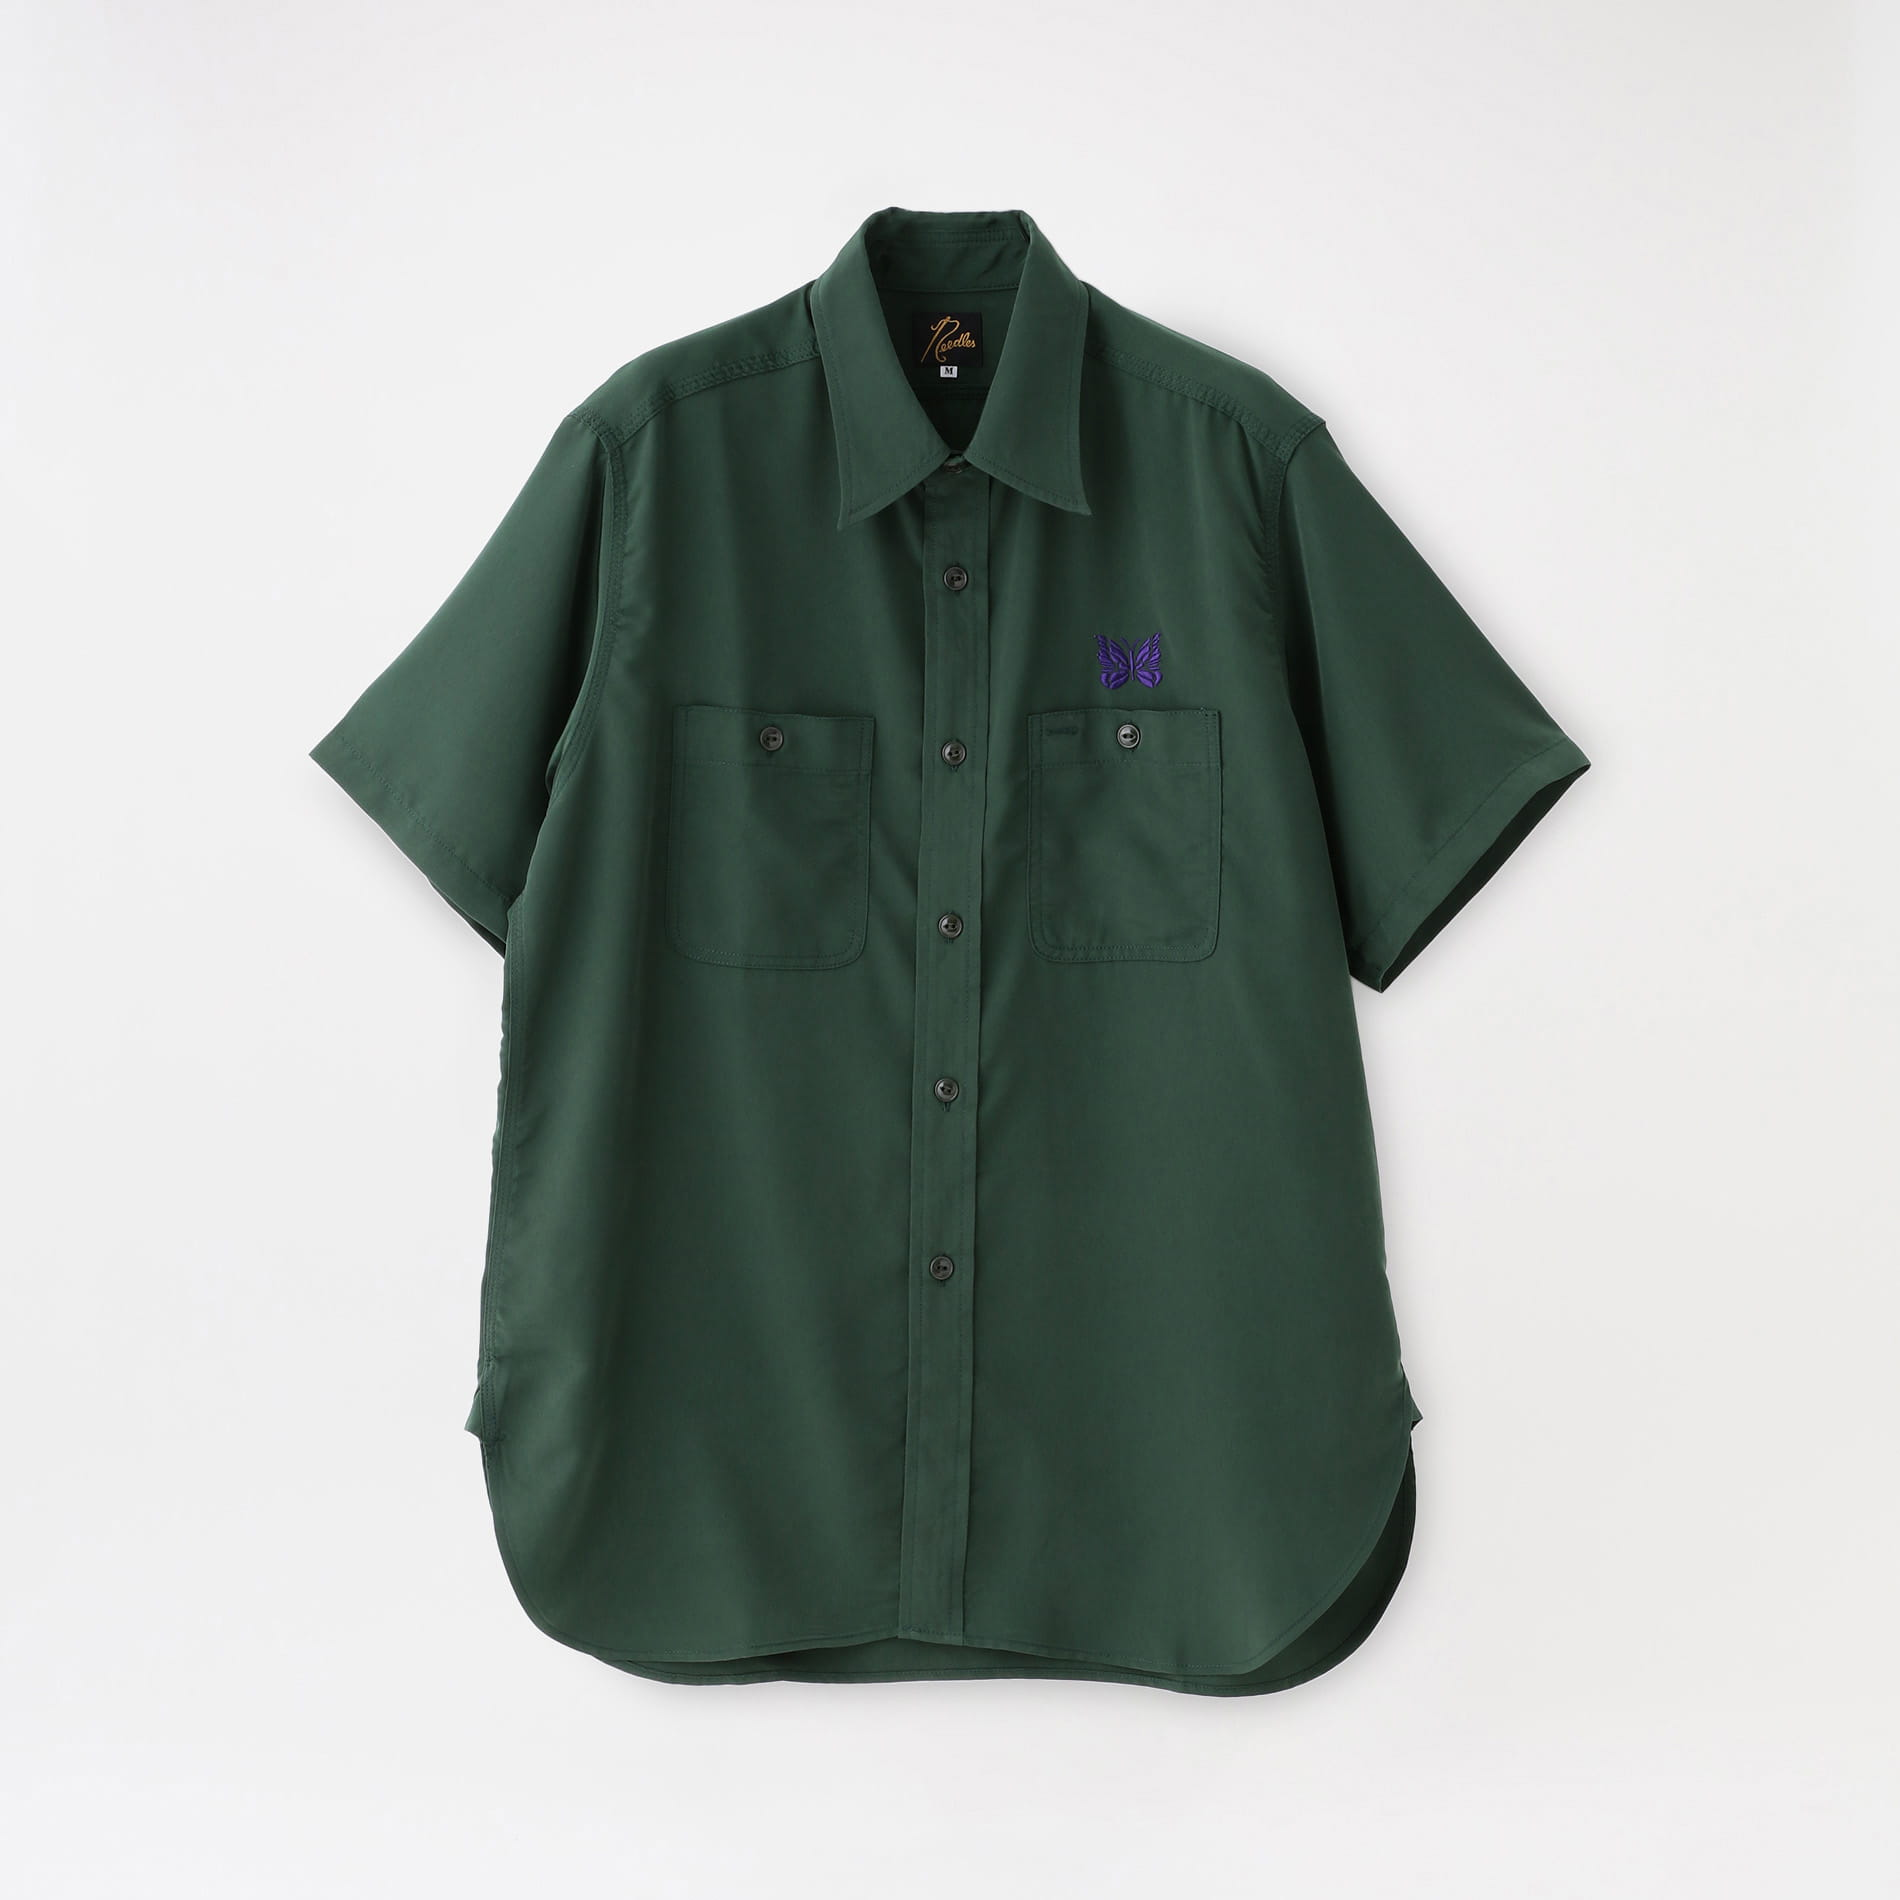 【Needles】MEN シャツ S/S Work Shirt - Poly Cloth IN136